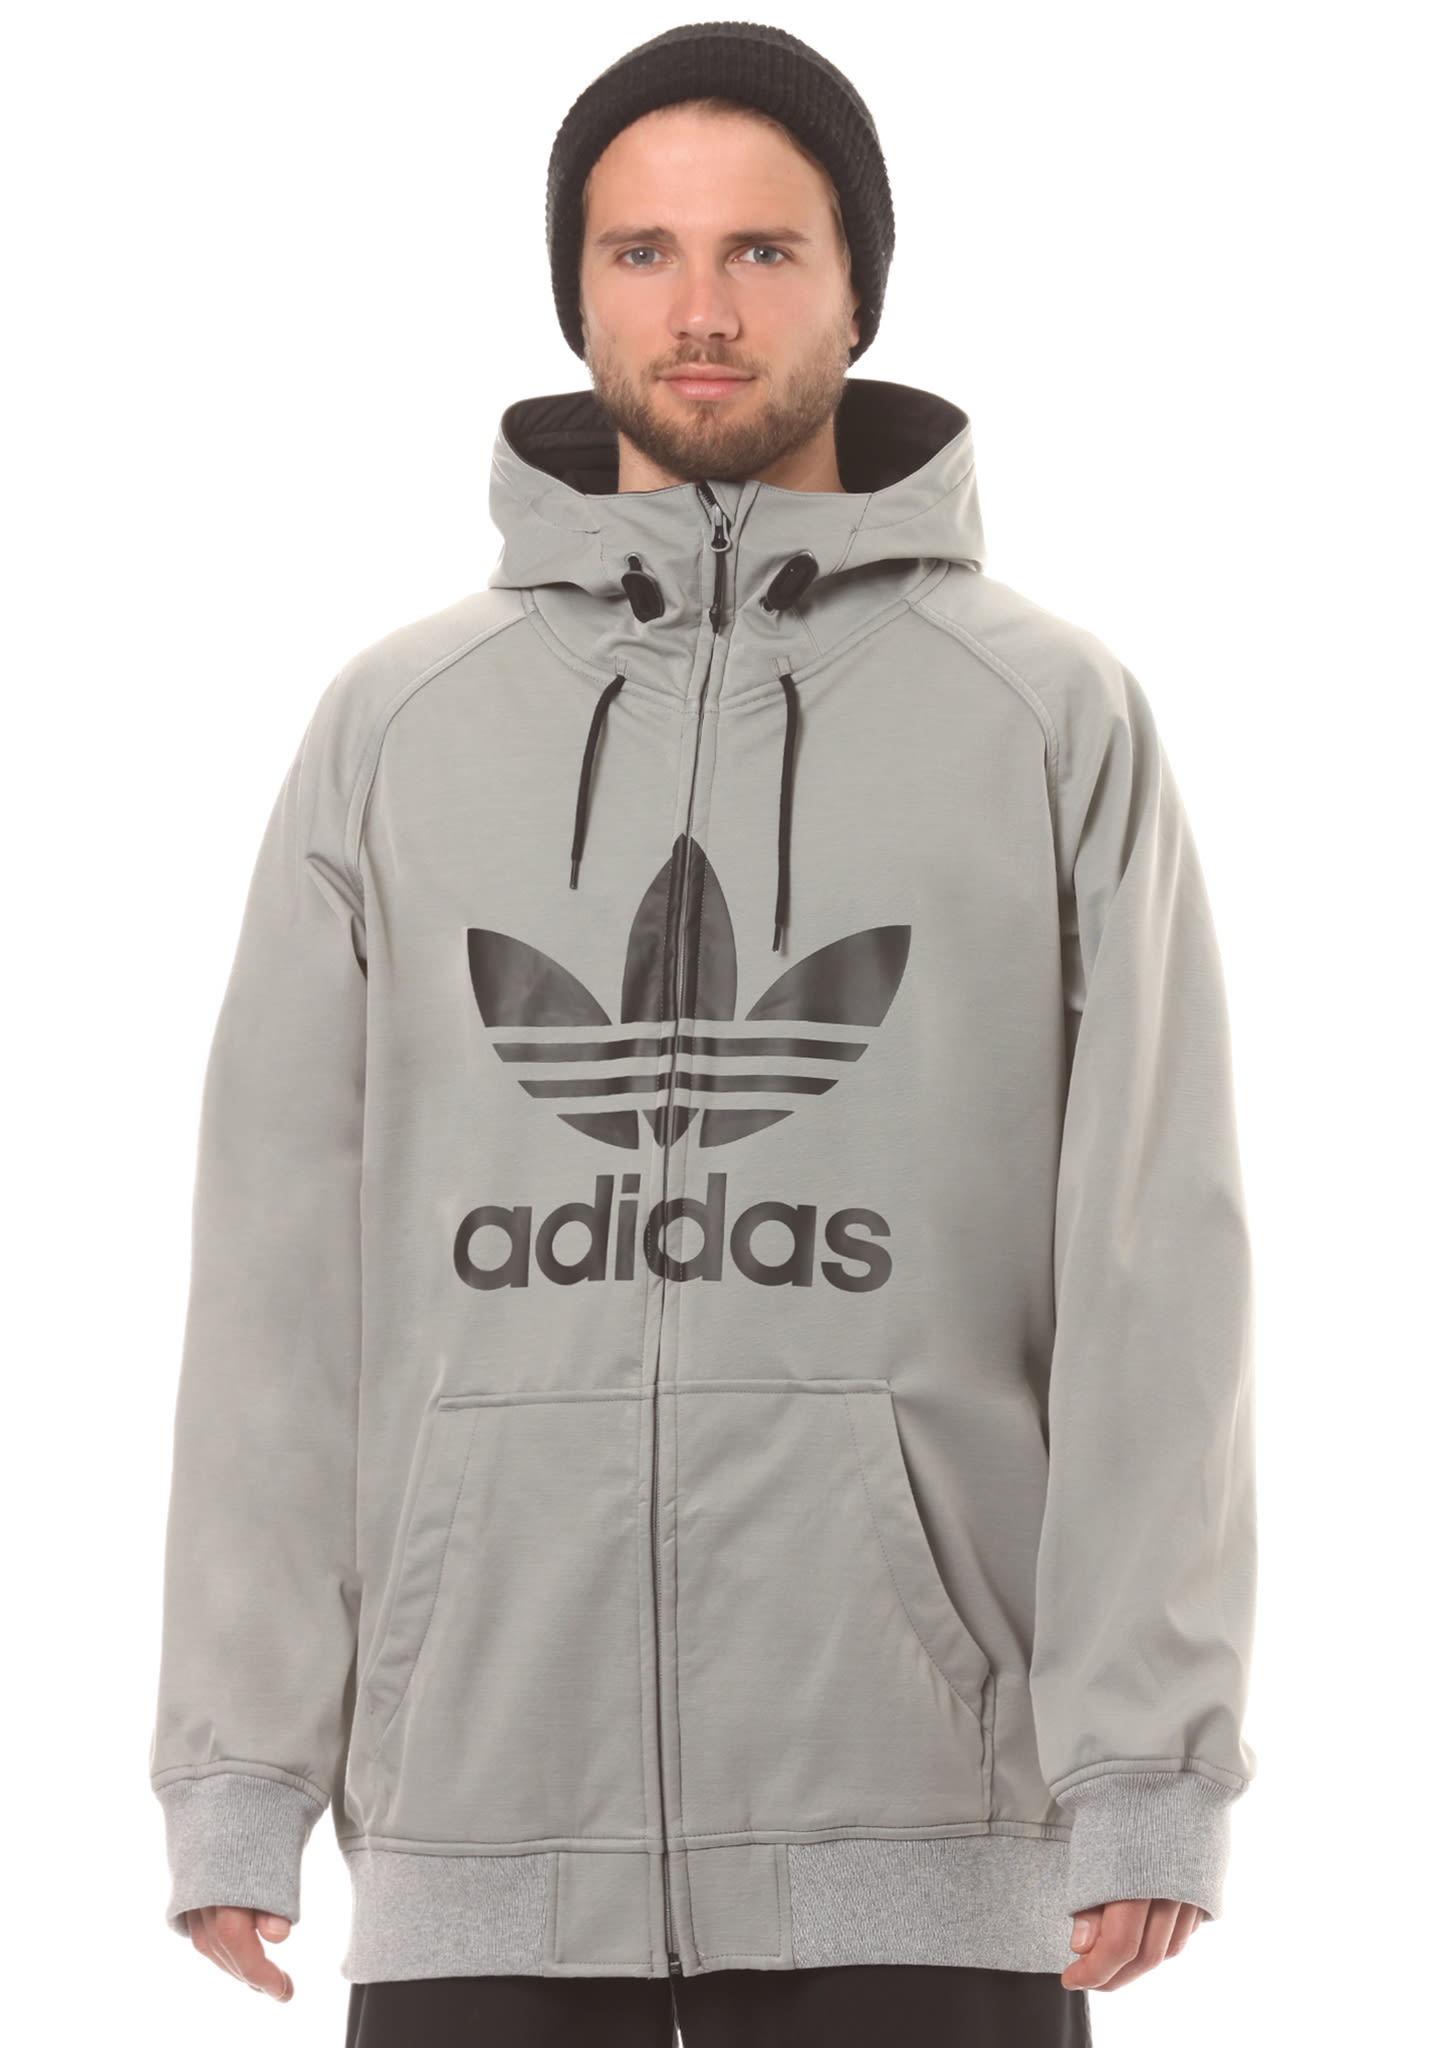 ADIDAS ORIGINALS Greeley Softshell - Snowboard Jacket for Men - Grey -  Planet Sports faa6ab6bd2